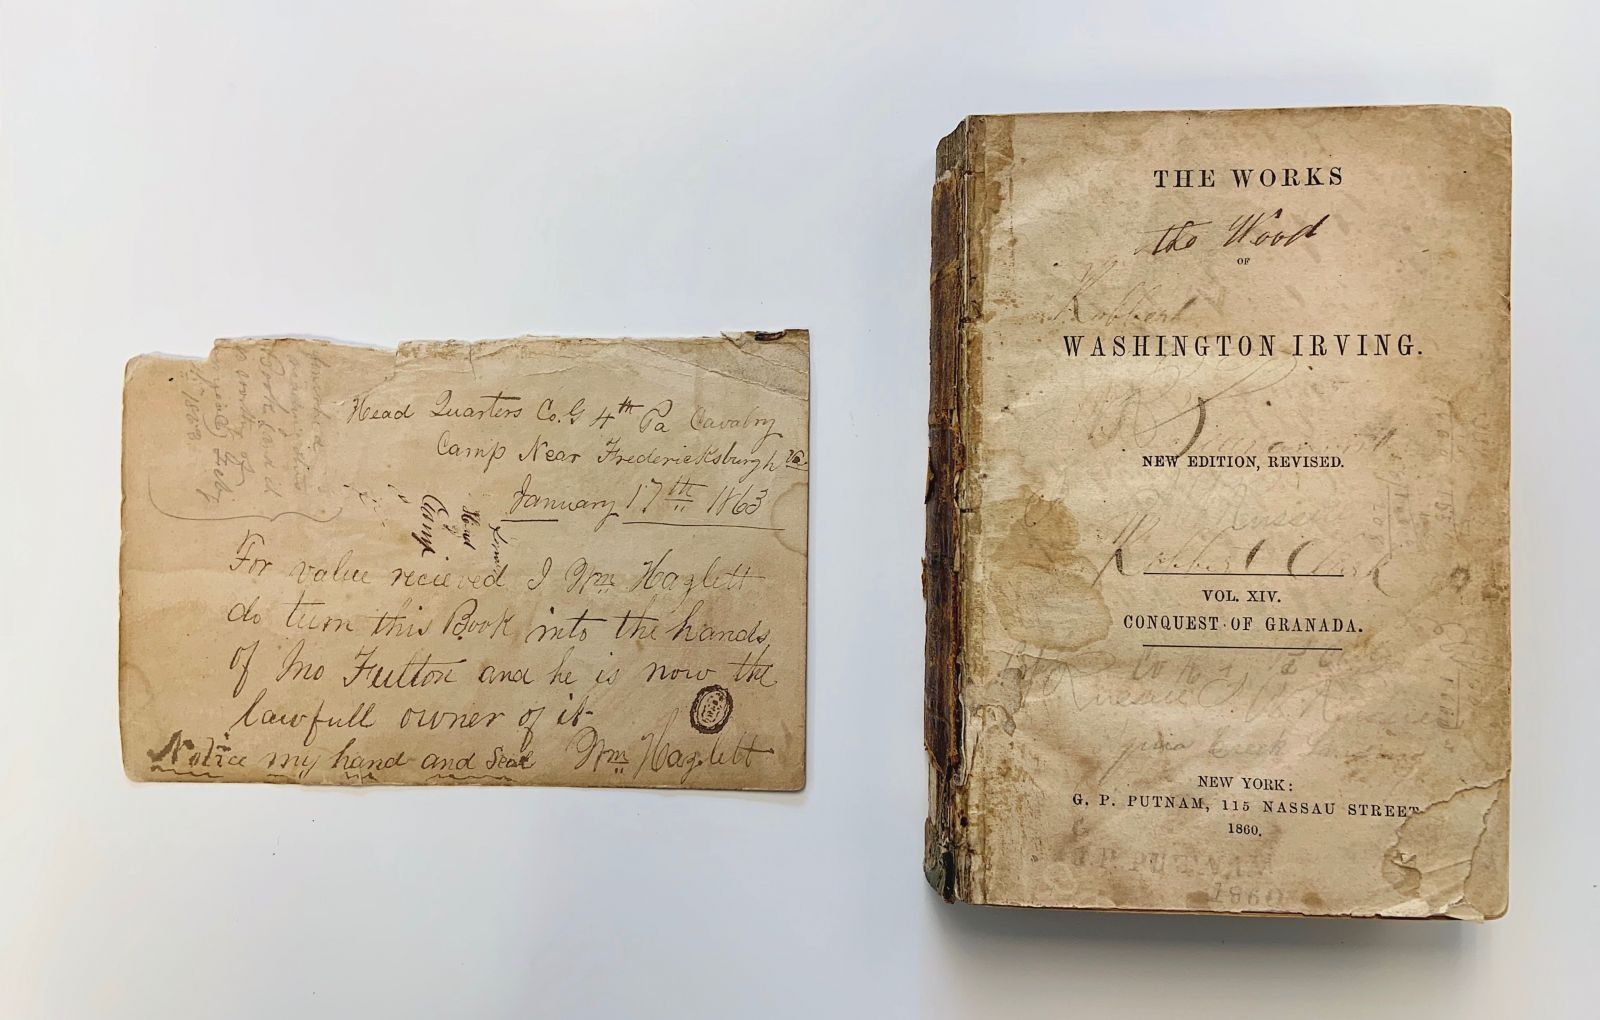 "The first page and title page of the 1860 copy of Conquest of Granada reads: ""For value received I Mr. Hazlett do turn this Book into the hands of Mr. Fulton and he is now the lawfull owner of it."" Signed on January 17, 1863."